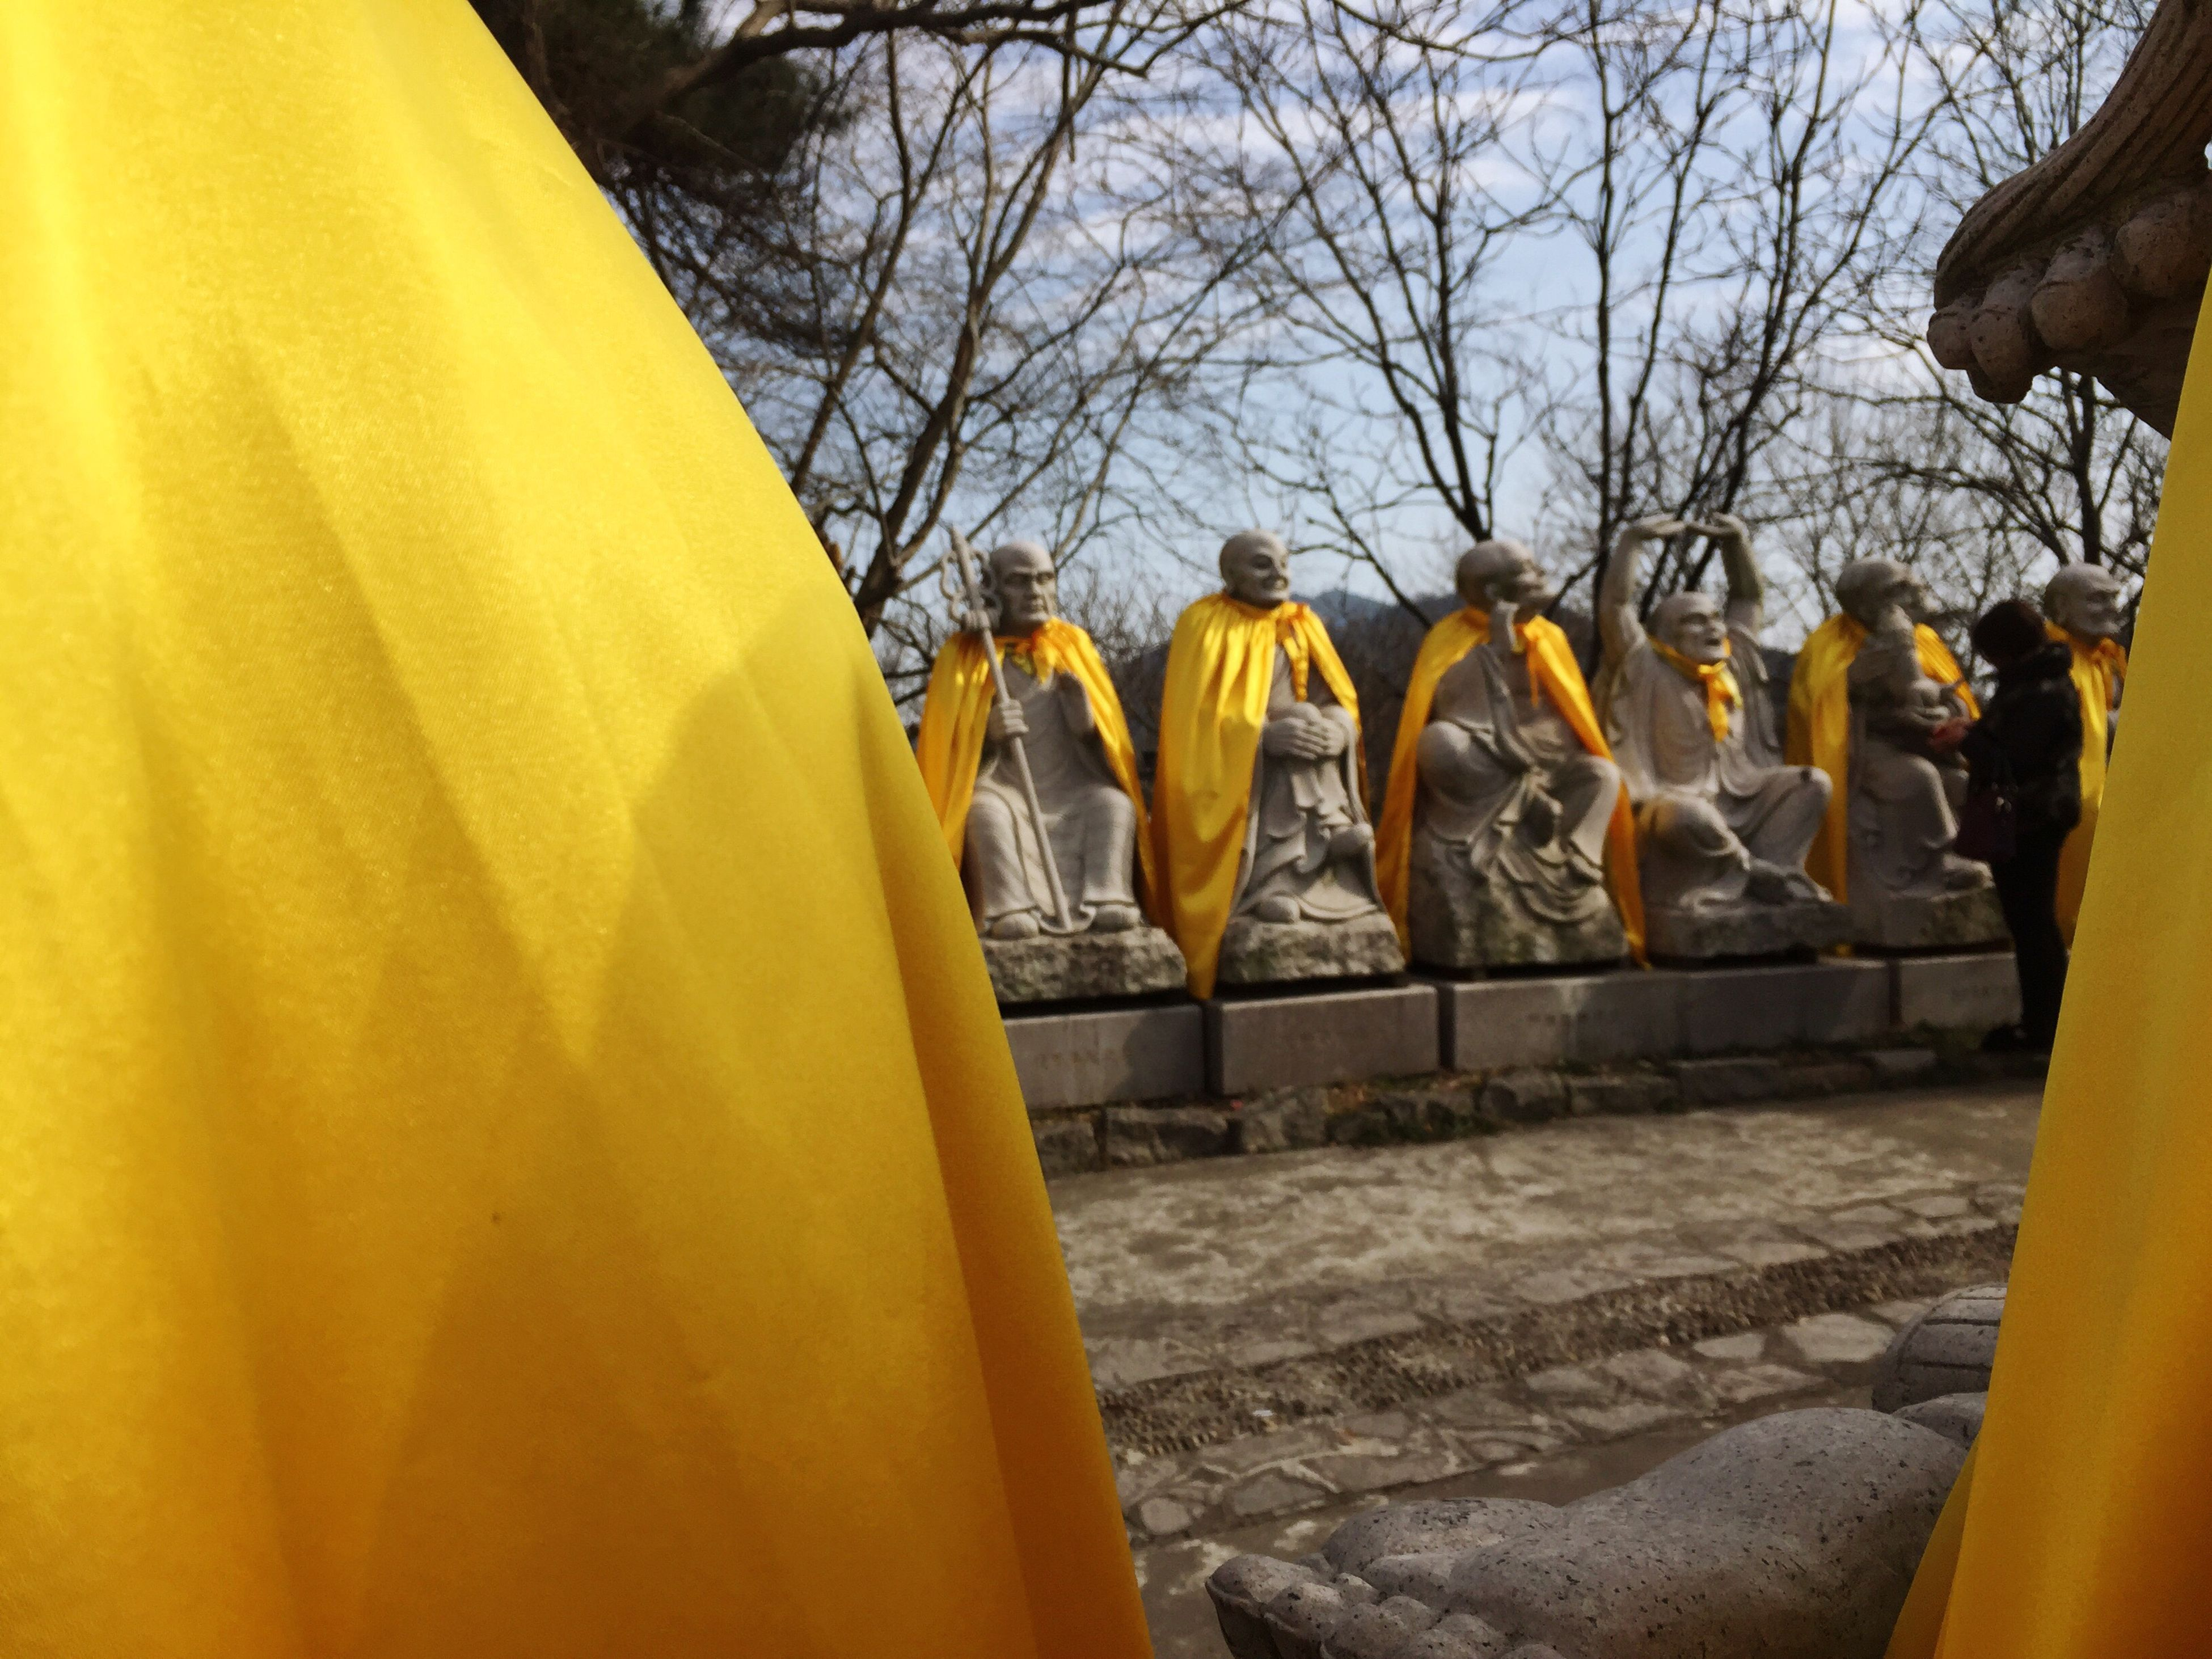 yellow, religion, spirituality, built structure, place of worship, tree, no people, outdoors, day, statue, architecture